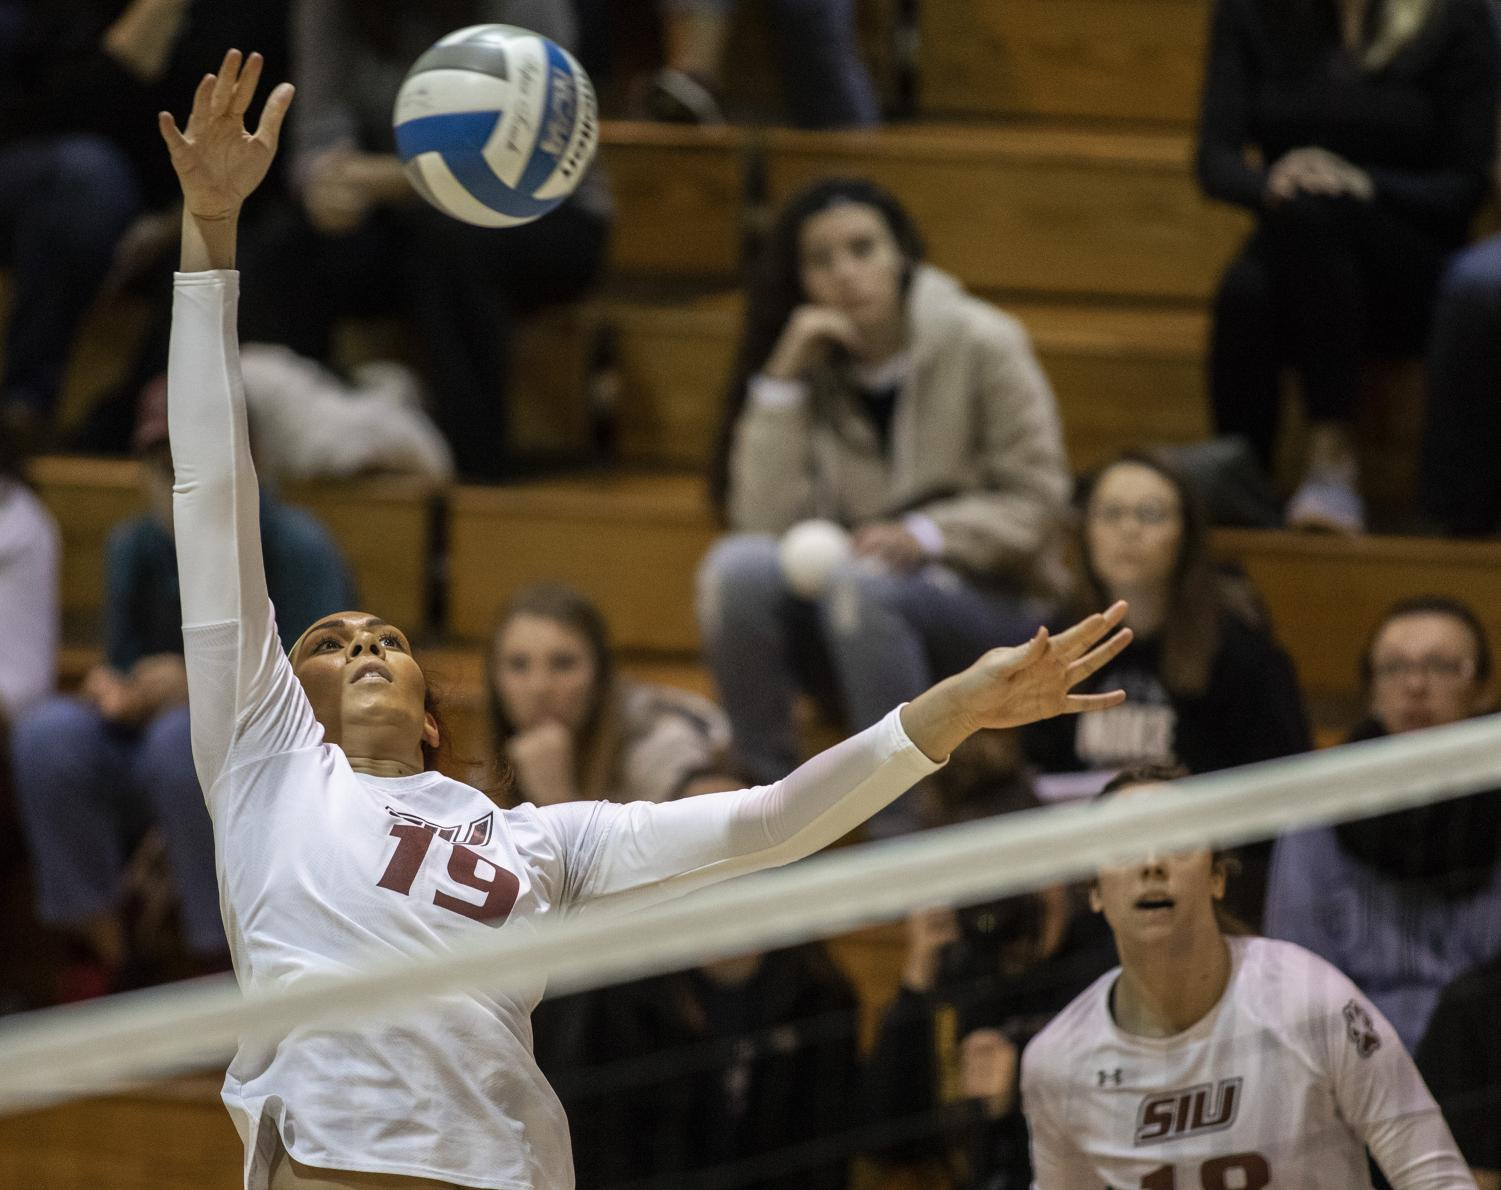 Senior+outside+hitter%2C+Malvis+Ortiz%2C+spikes+the+ball%2C+Friday%2C+Nov.+2%2C+2018%2C+during+the+Saluki%E2%80%99s+3-1+win+againt+the+Indiana+Sycamores%2C+at+Davies+Gym.+%28Isabel+Miller+%7C+%40IsabelMillerDE%29